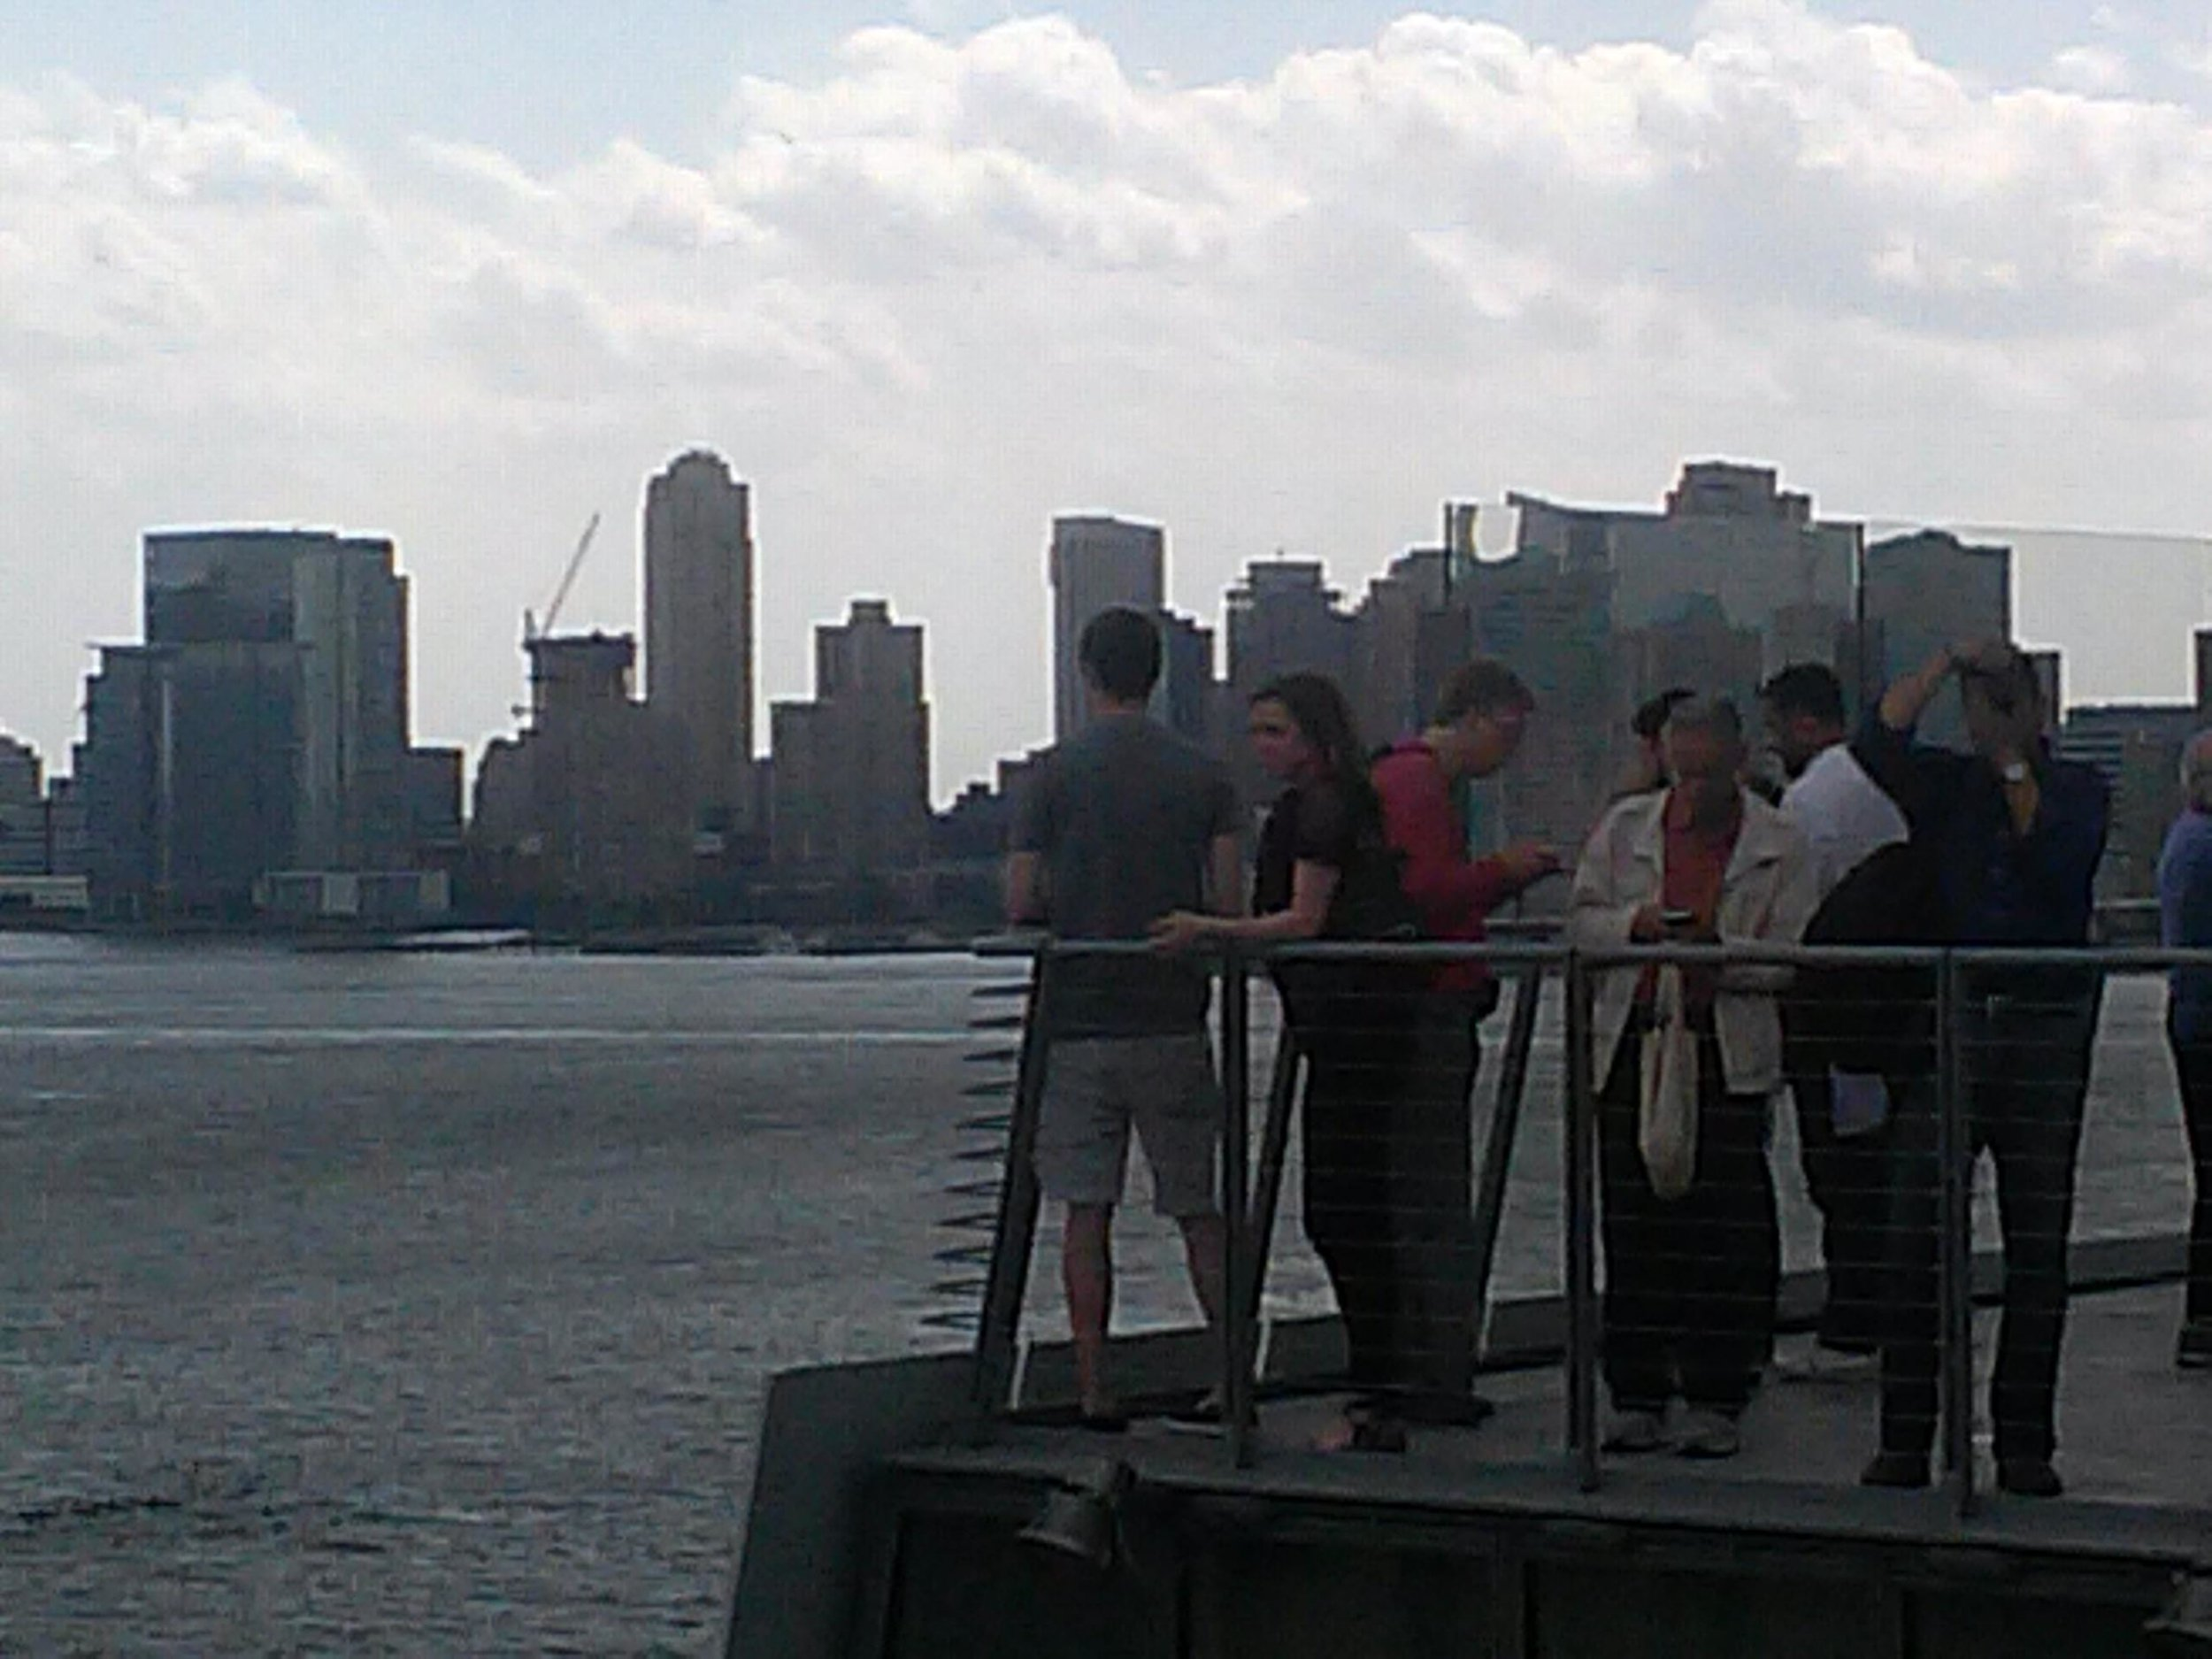 People at the Whitney overlooking Hudson River.